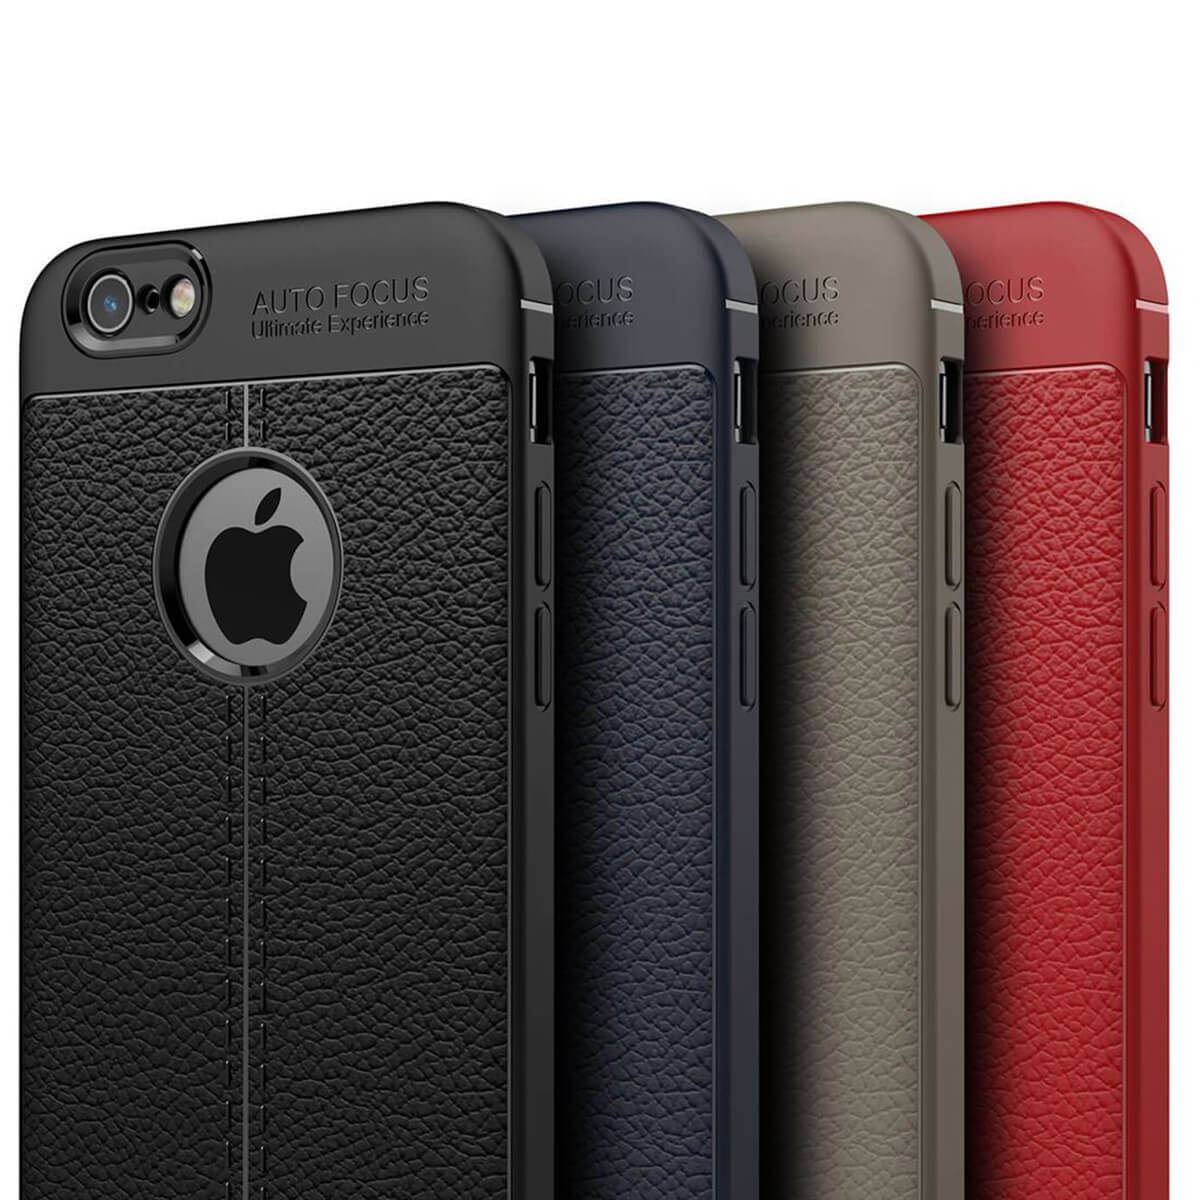 thumbnail 16 - Protective Leather Case For Apple iPhone Luxury Shockproof Pattern Soft TPU